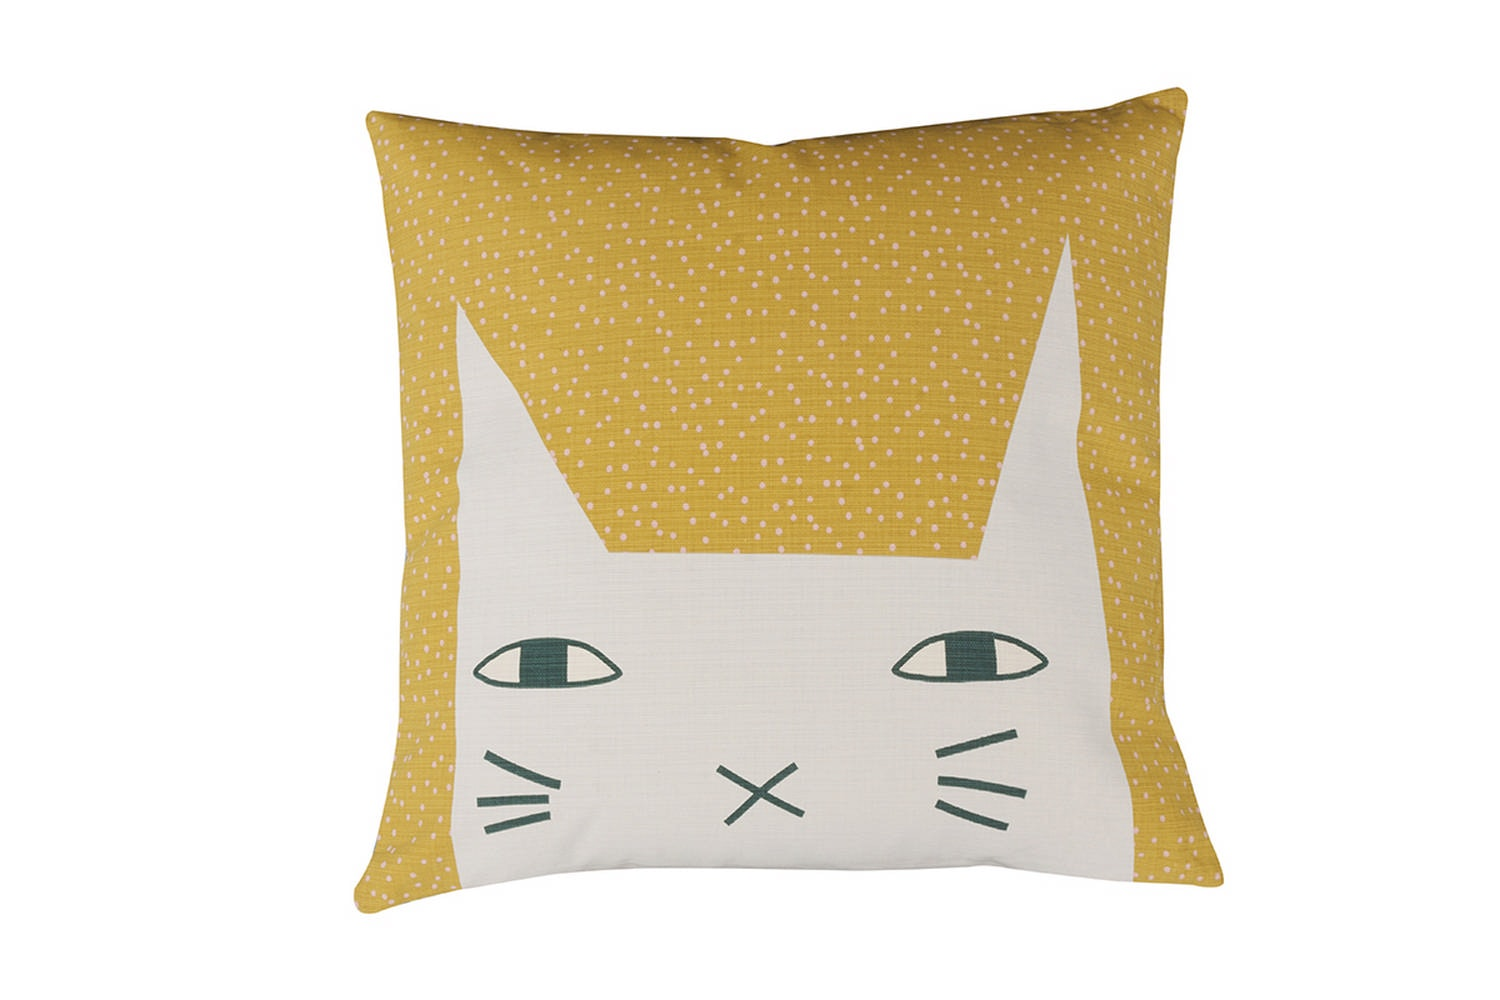 Cat Ears Cushion - Mustard/Duck Egg by Donna Wilson